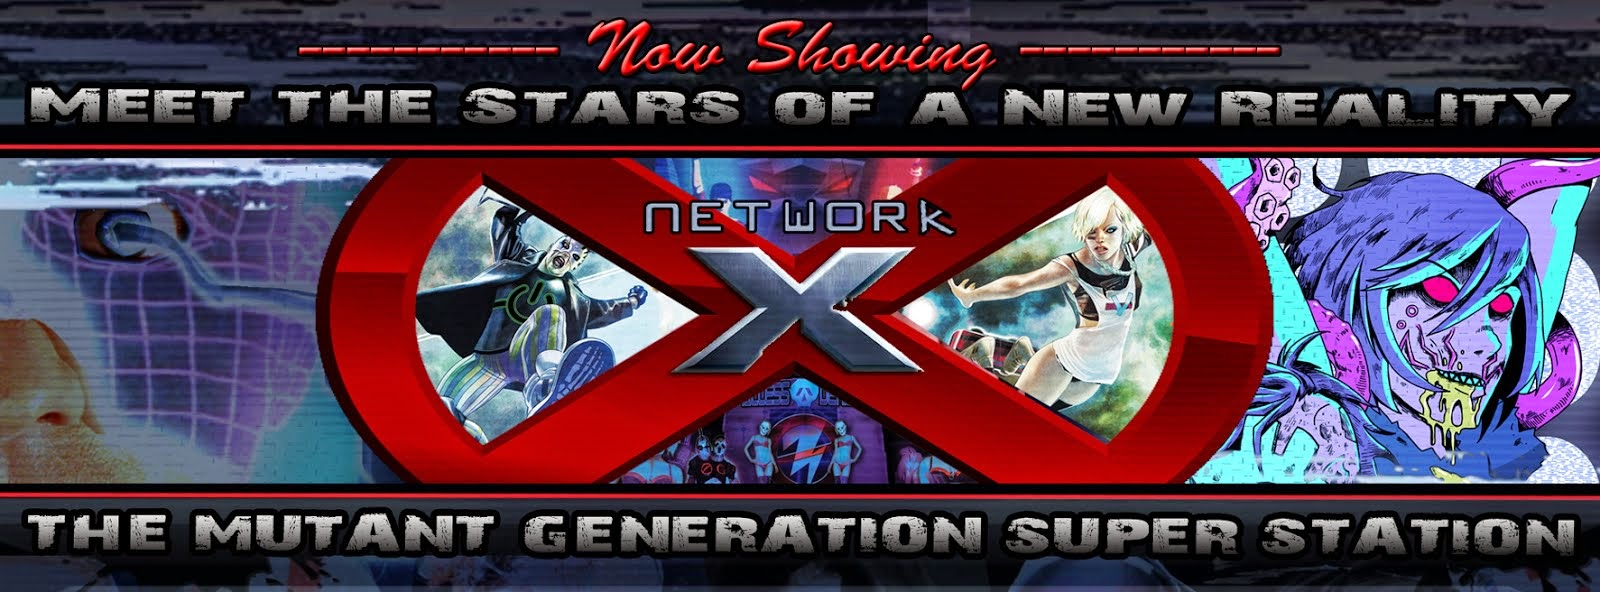 NETWORK X: The Mutant Generation Super Station